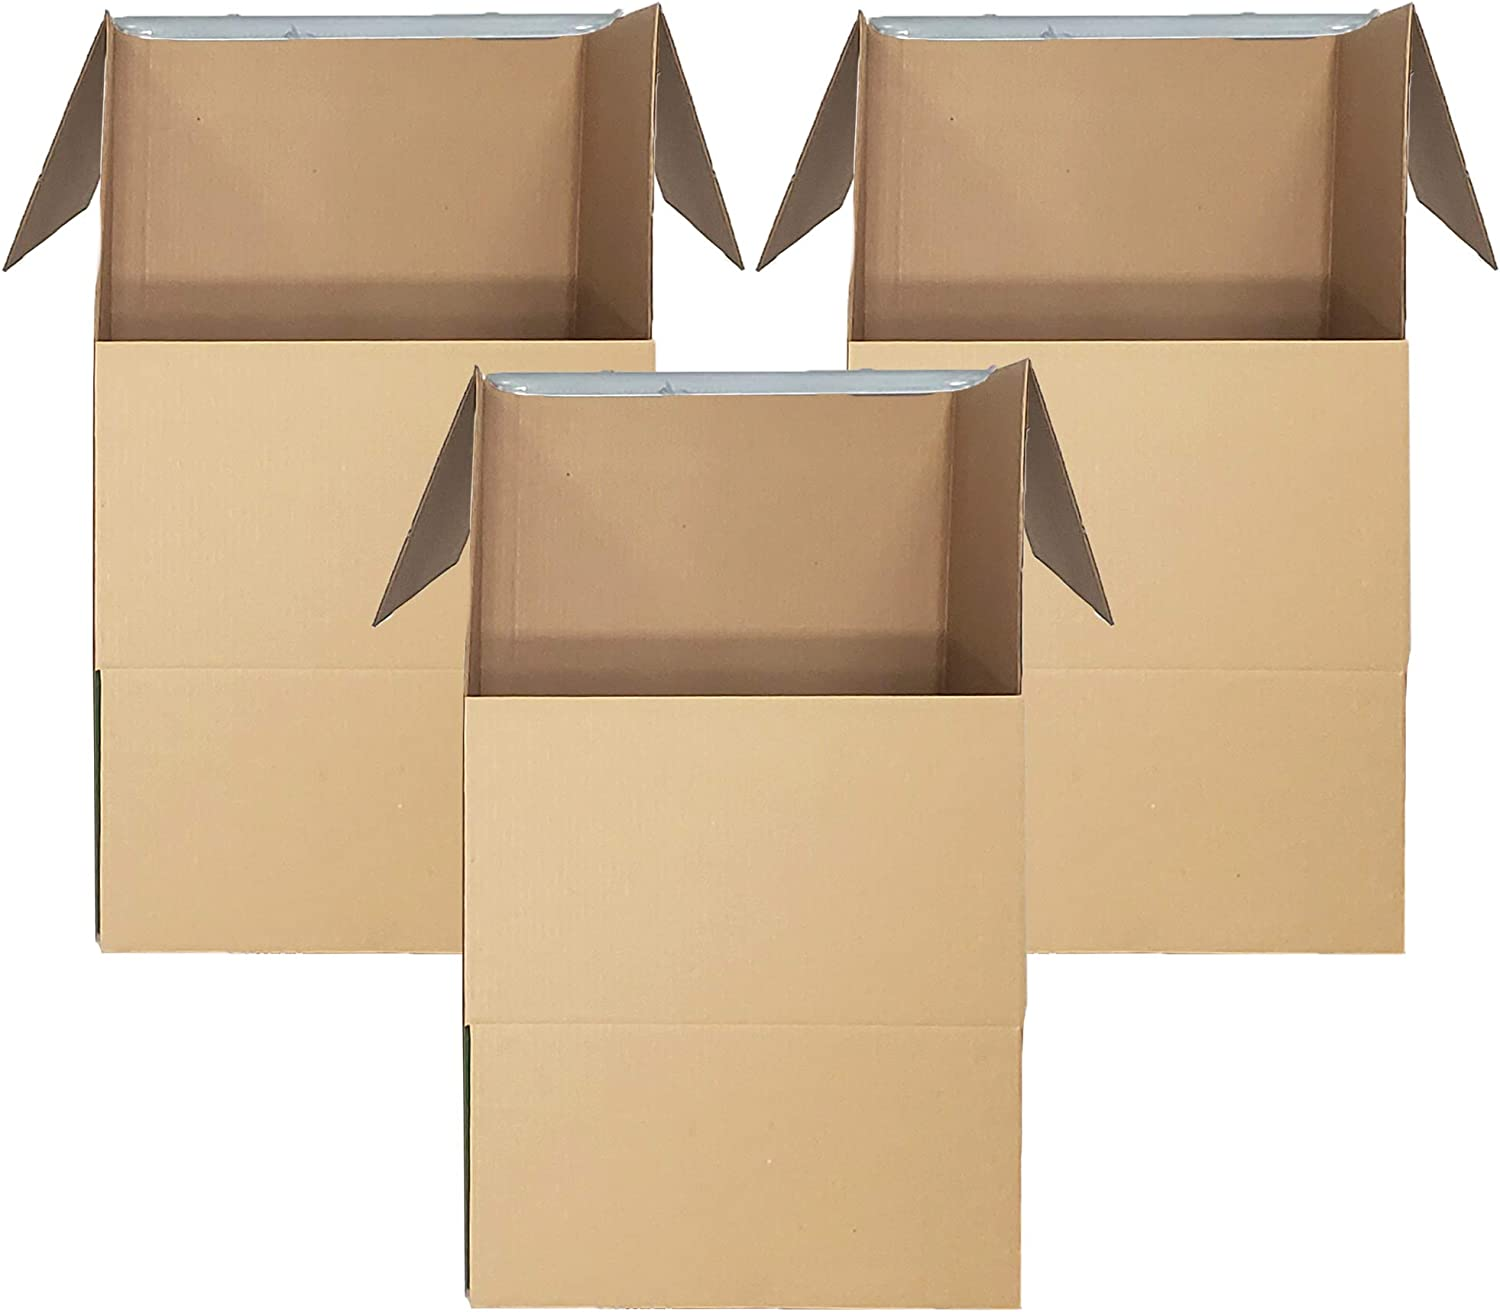 20x20x34 Cheap Cheap Moving Boxes Wardrobe Moving Boxes 3-Pack